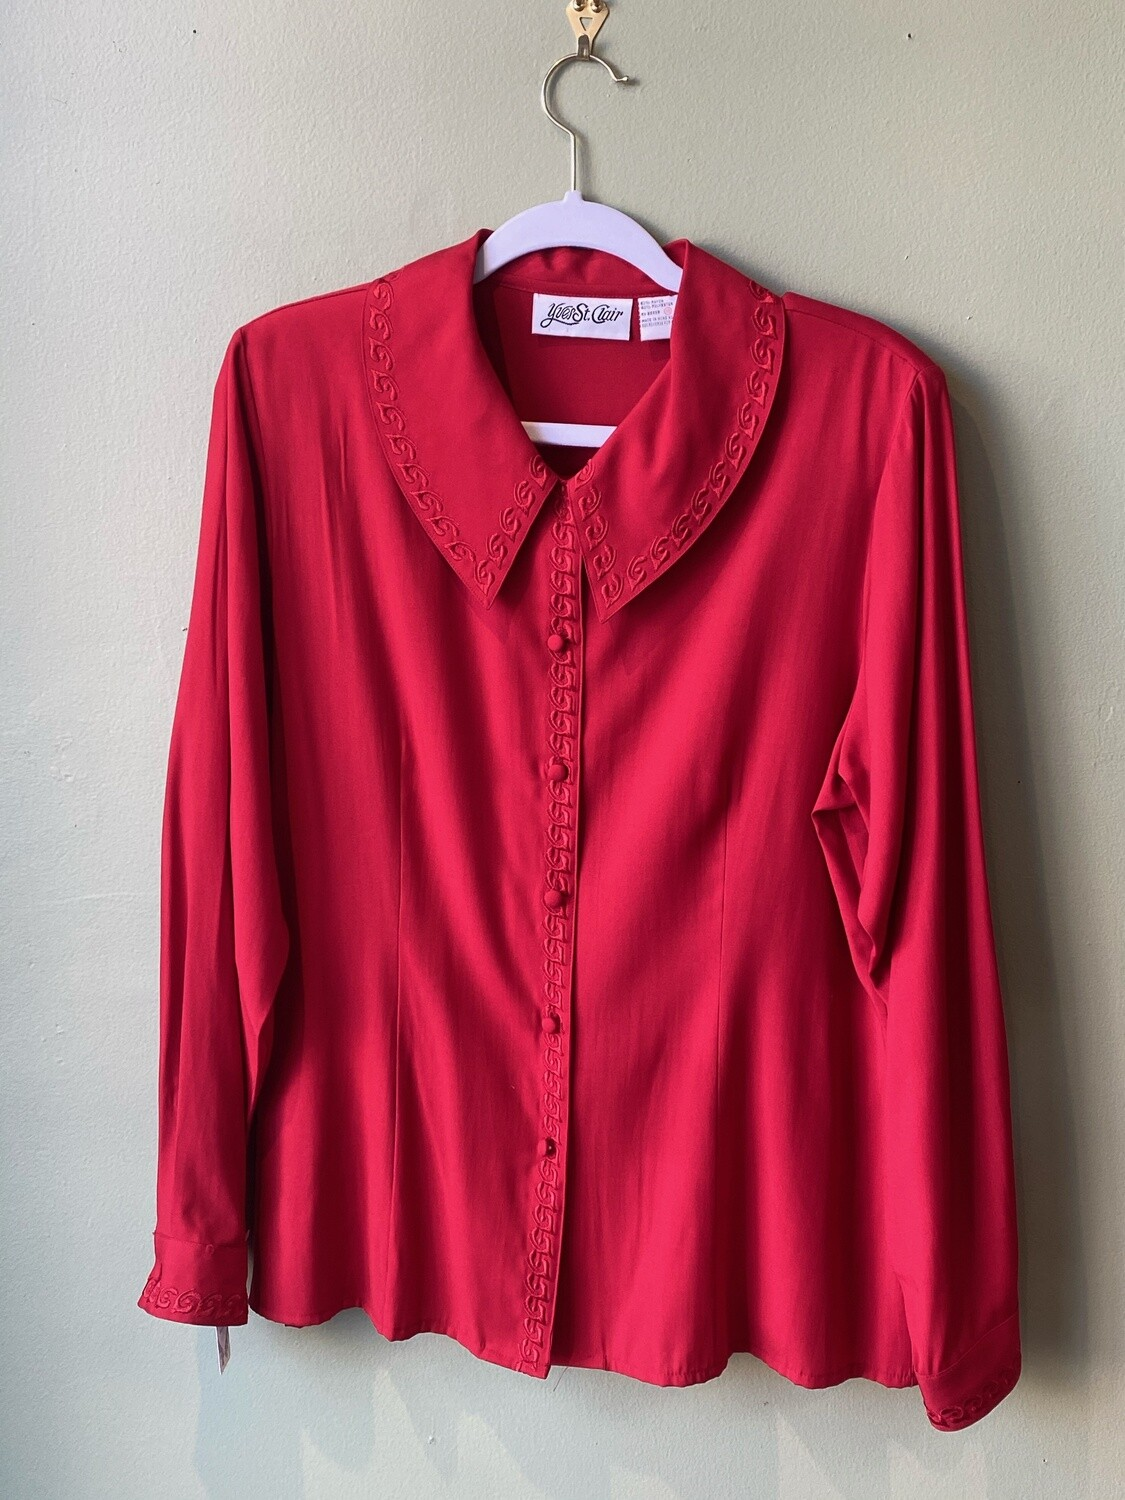 Vintage 70's Yves St Clair Red Blouse, Size 16